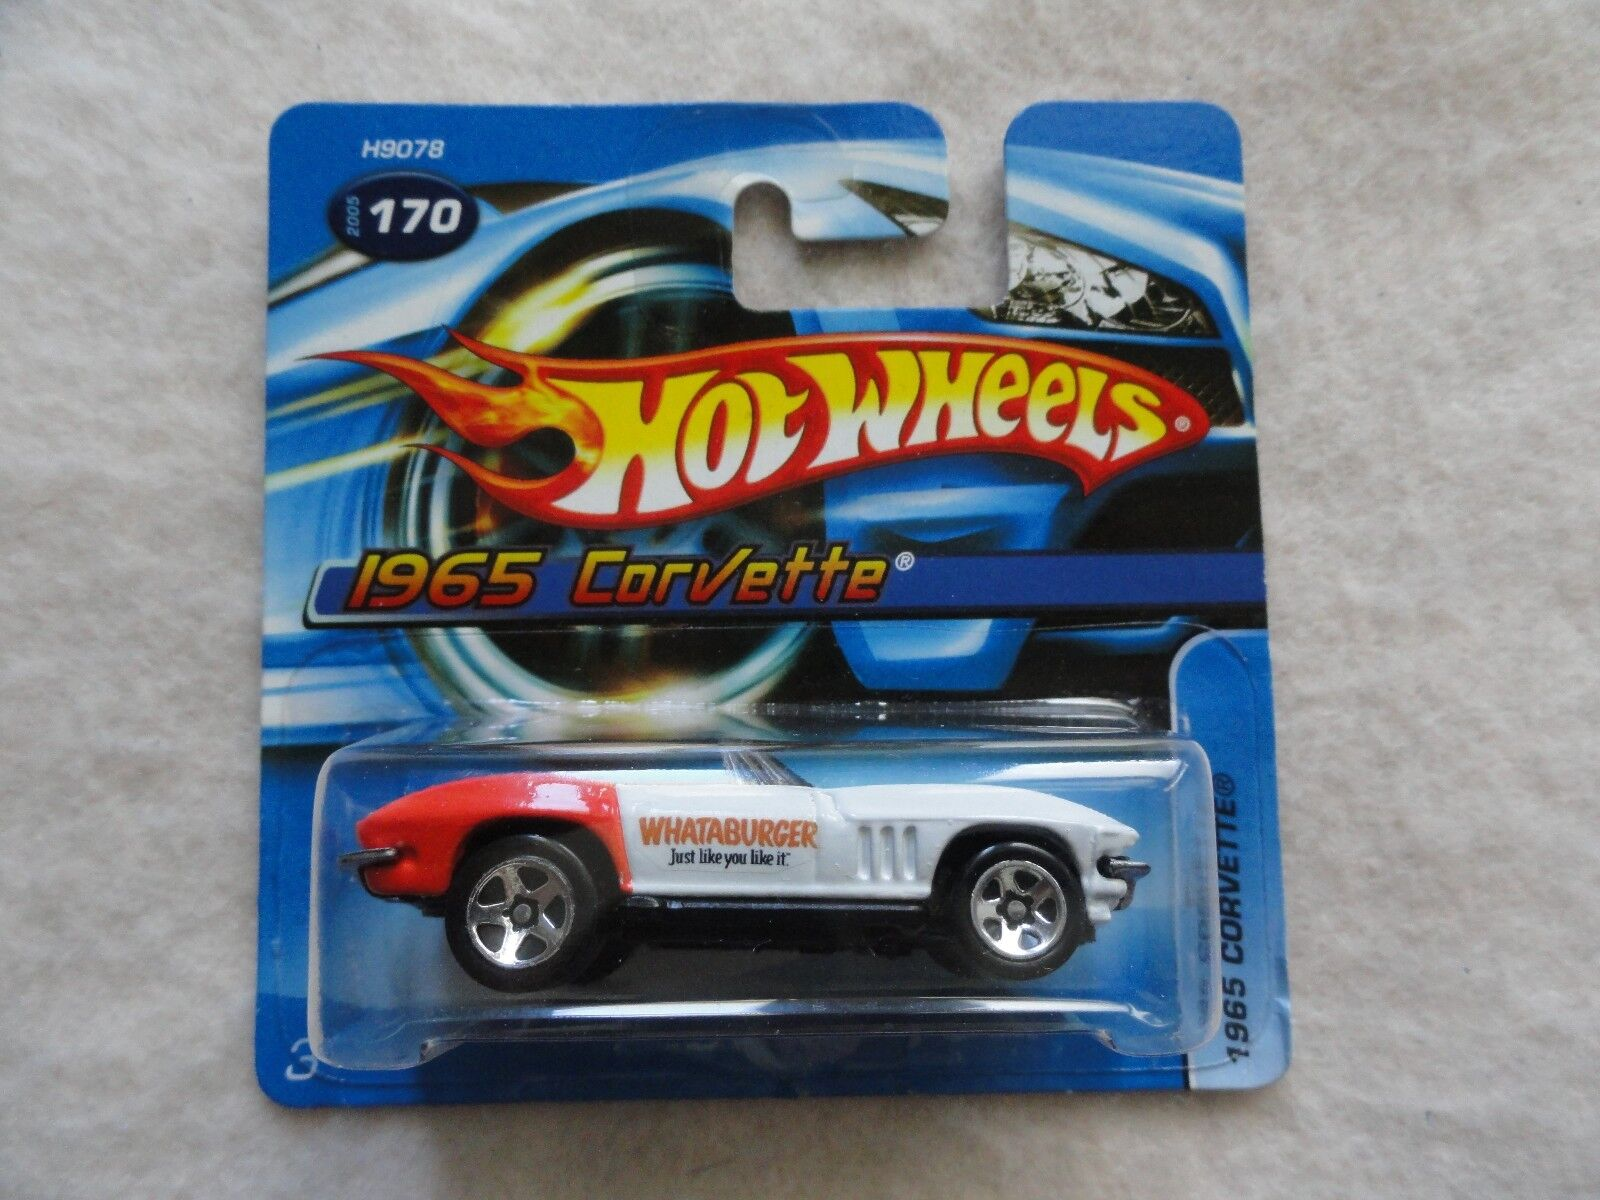 1965 corvette   170 whataburger hot wheels neue kurz - karte selten